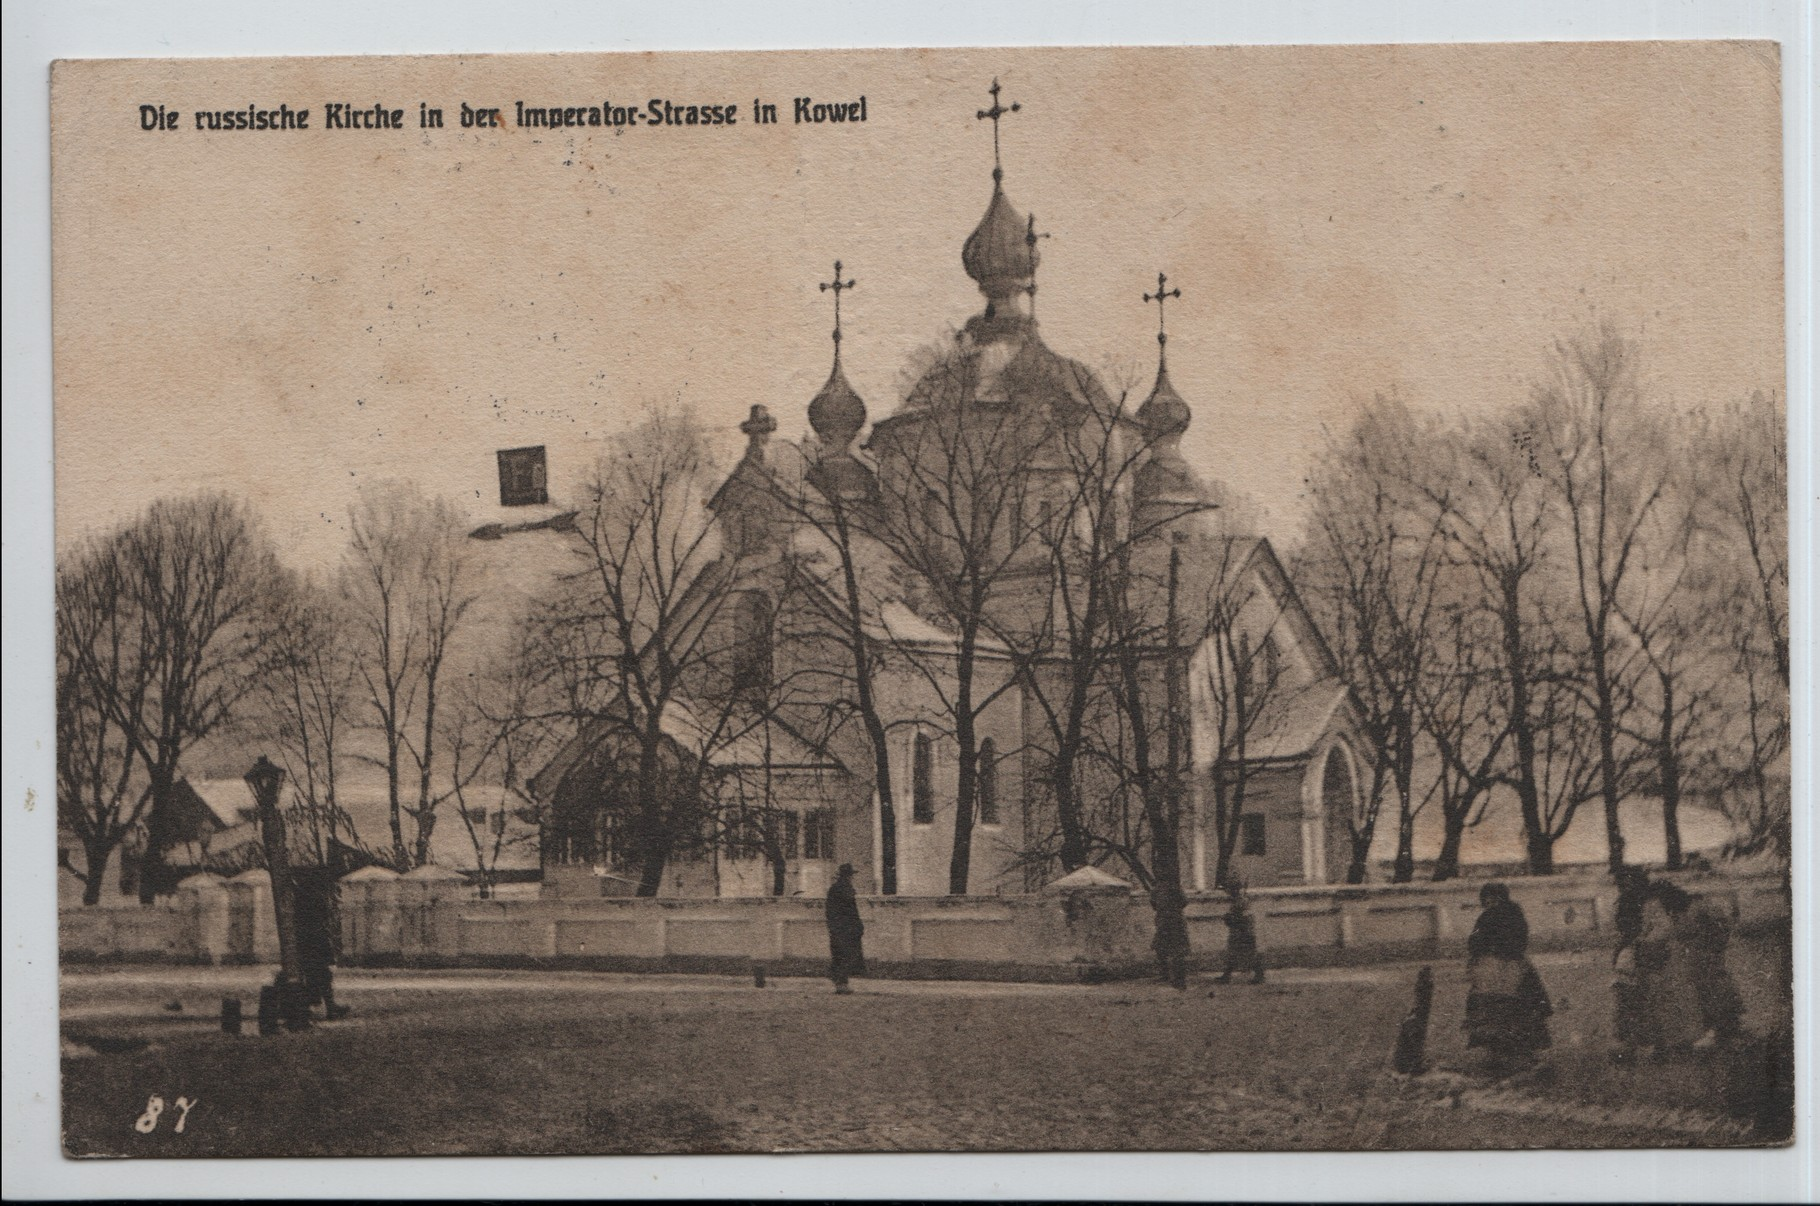 13. The russian church in Emperor street in Kowel (Ukraine)